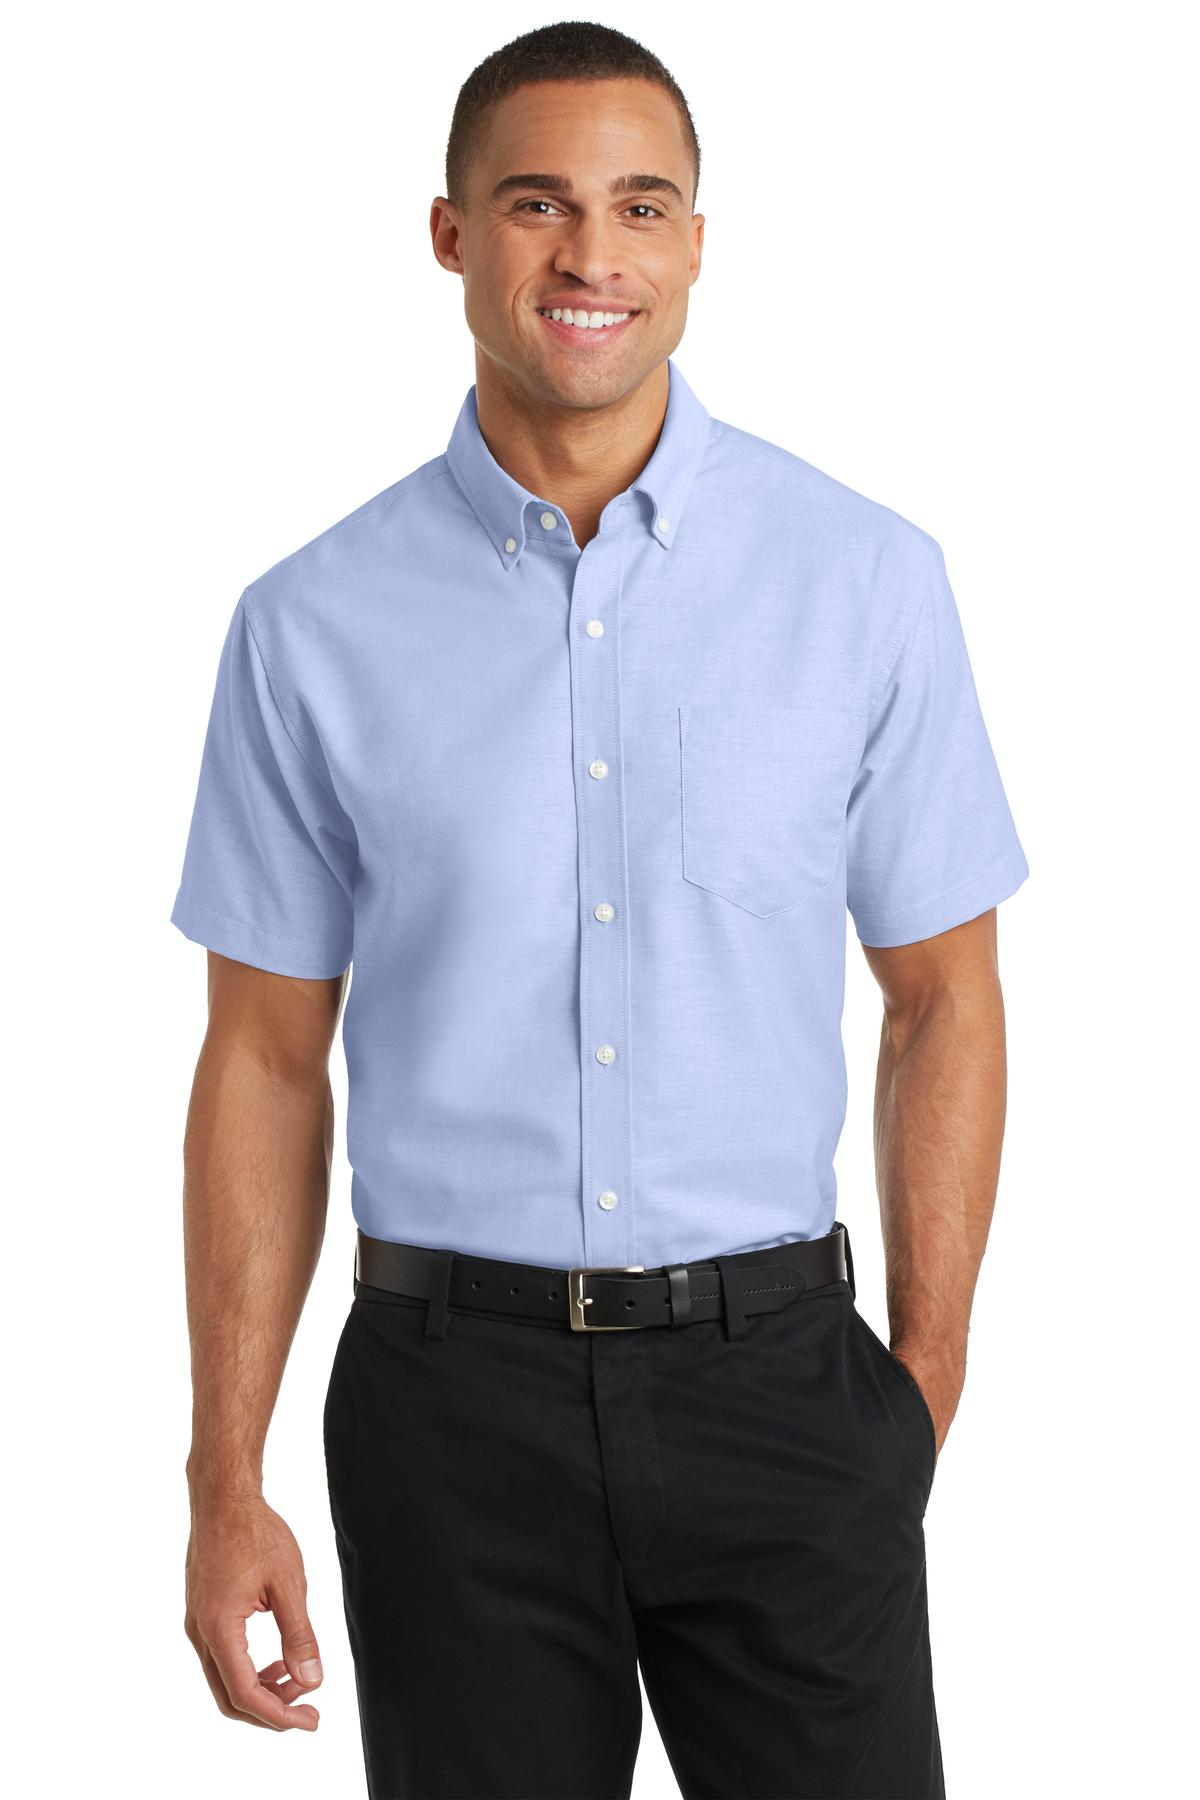 click to view Oxford Blue